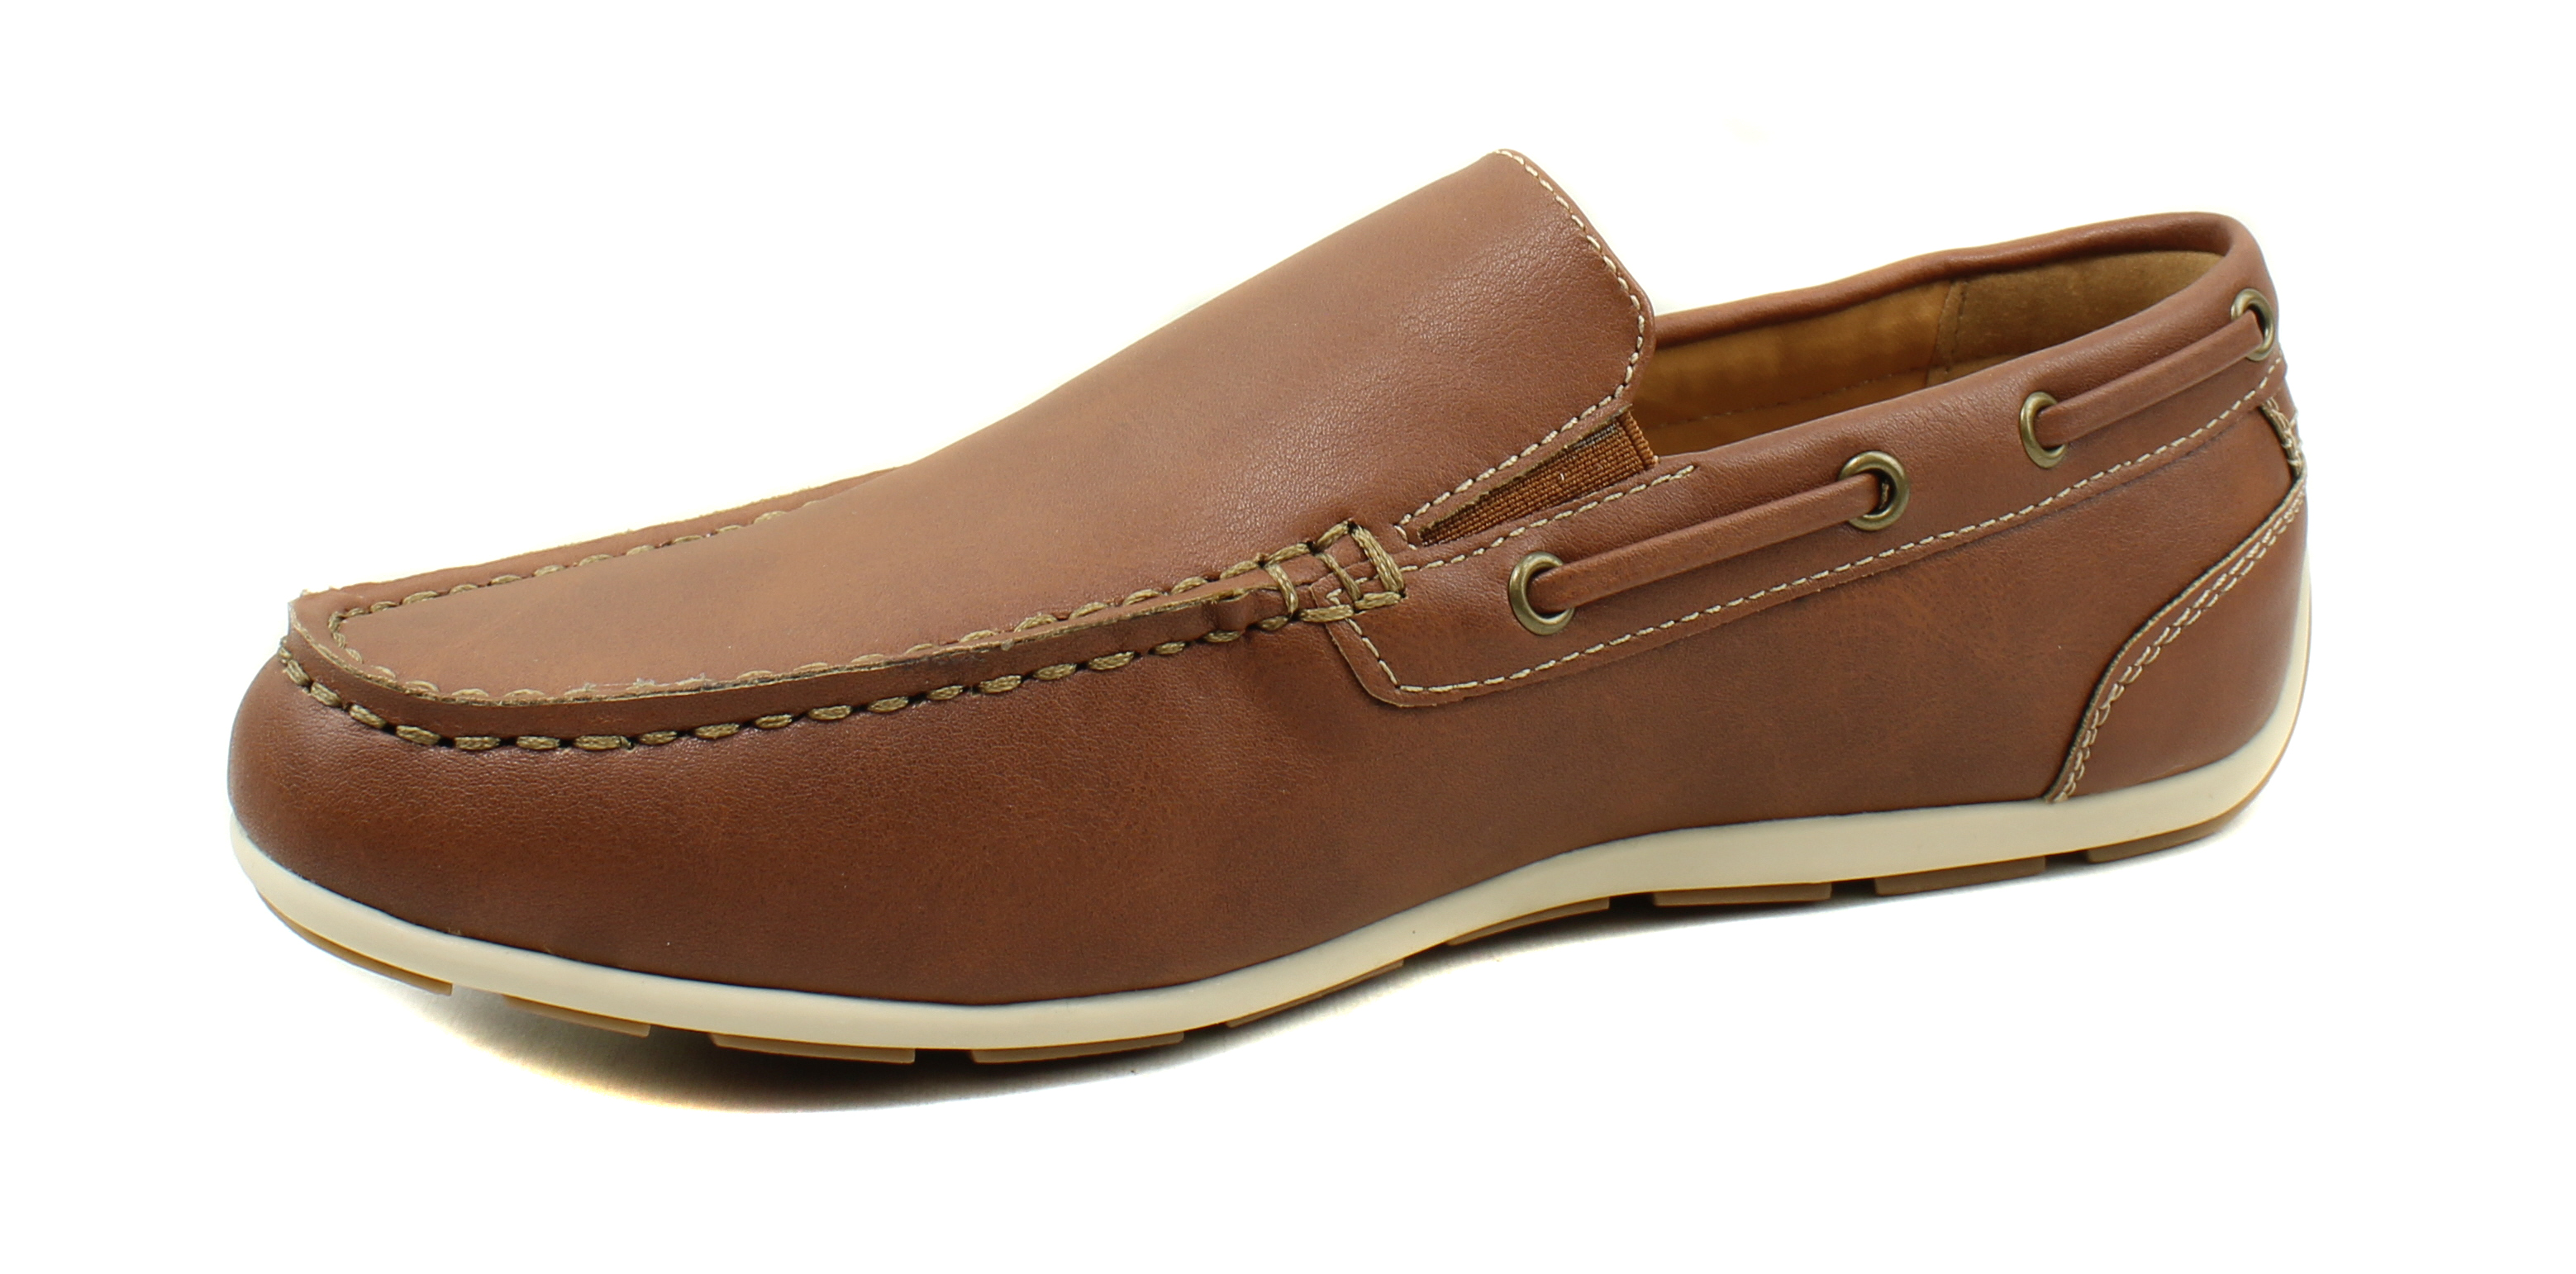 GBX-Homme-Ludlam-Casual-Moc-toe-Slip-on-Chaussures-Bateau-Driving-Loafers miniature 31